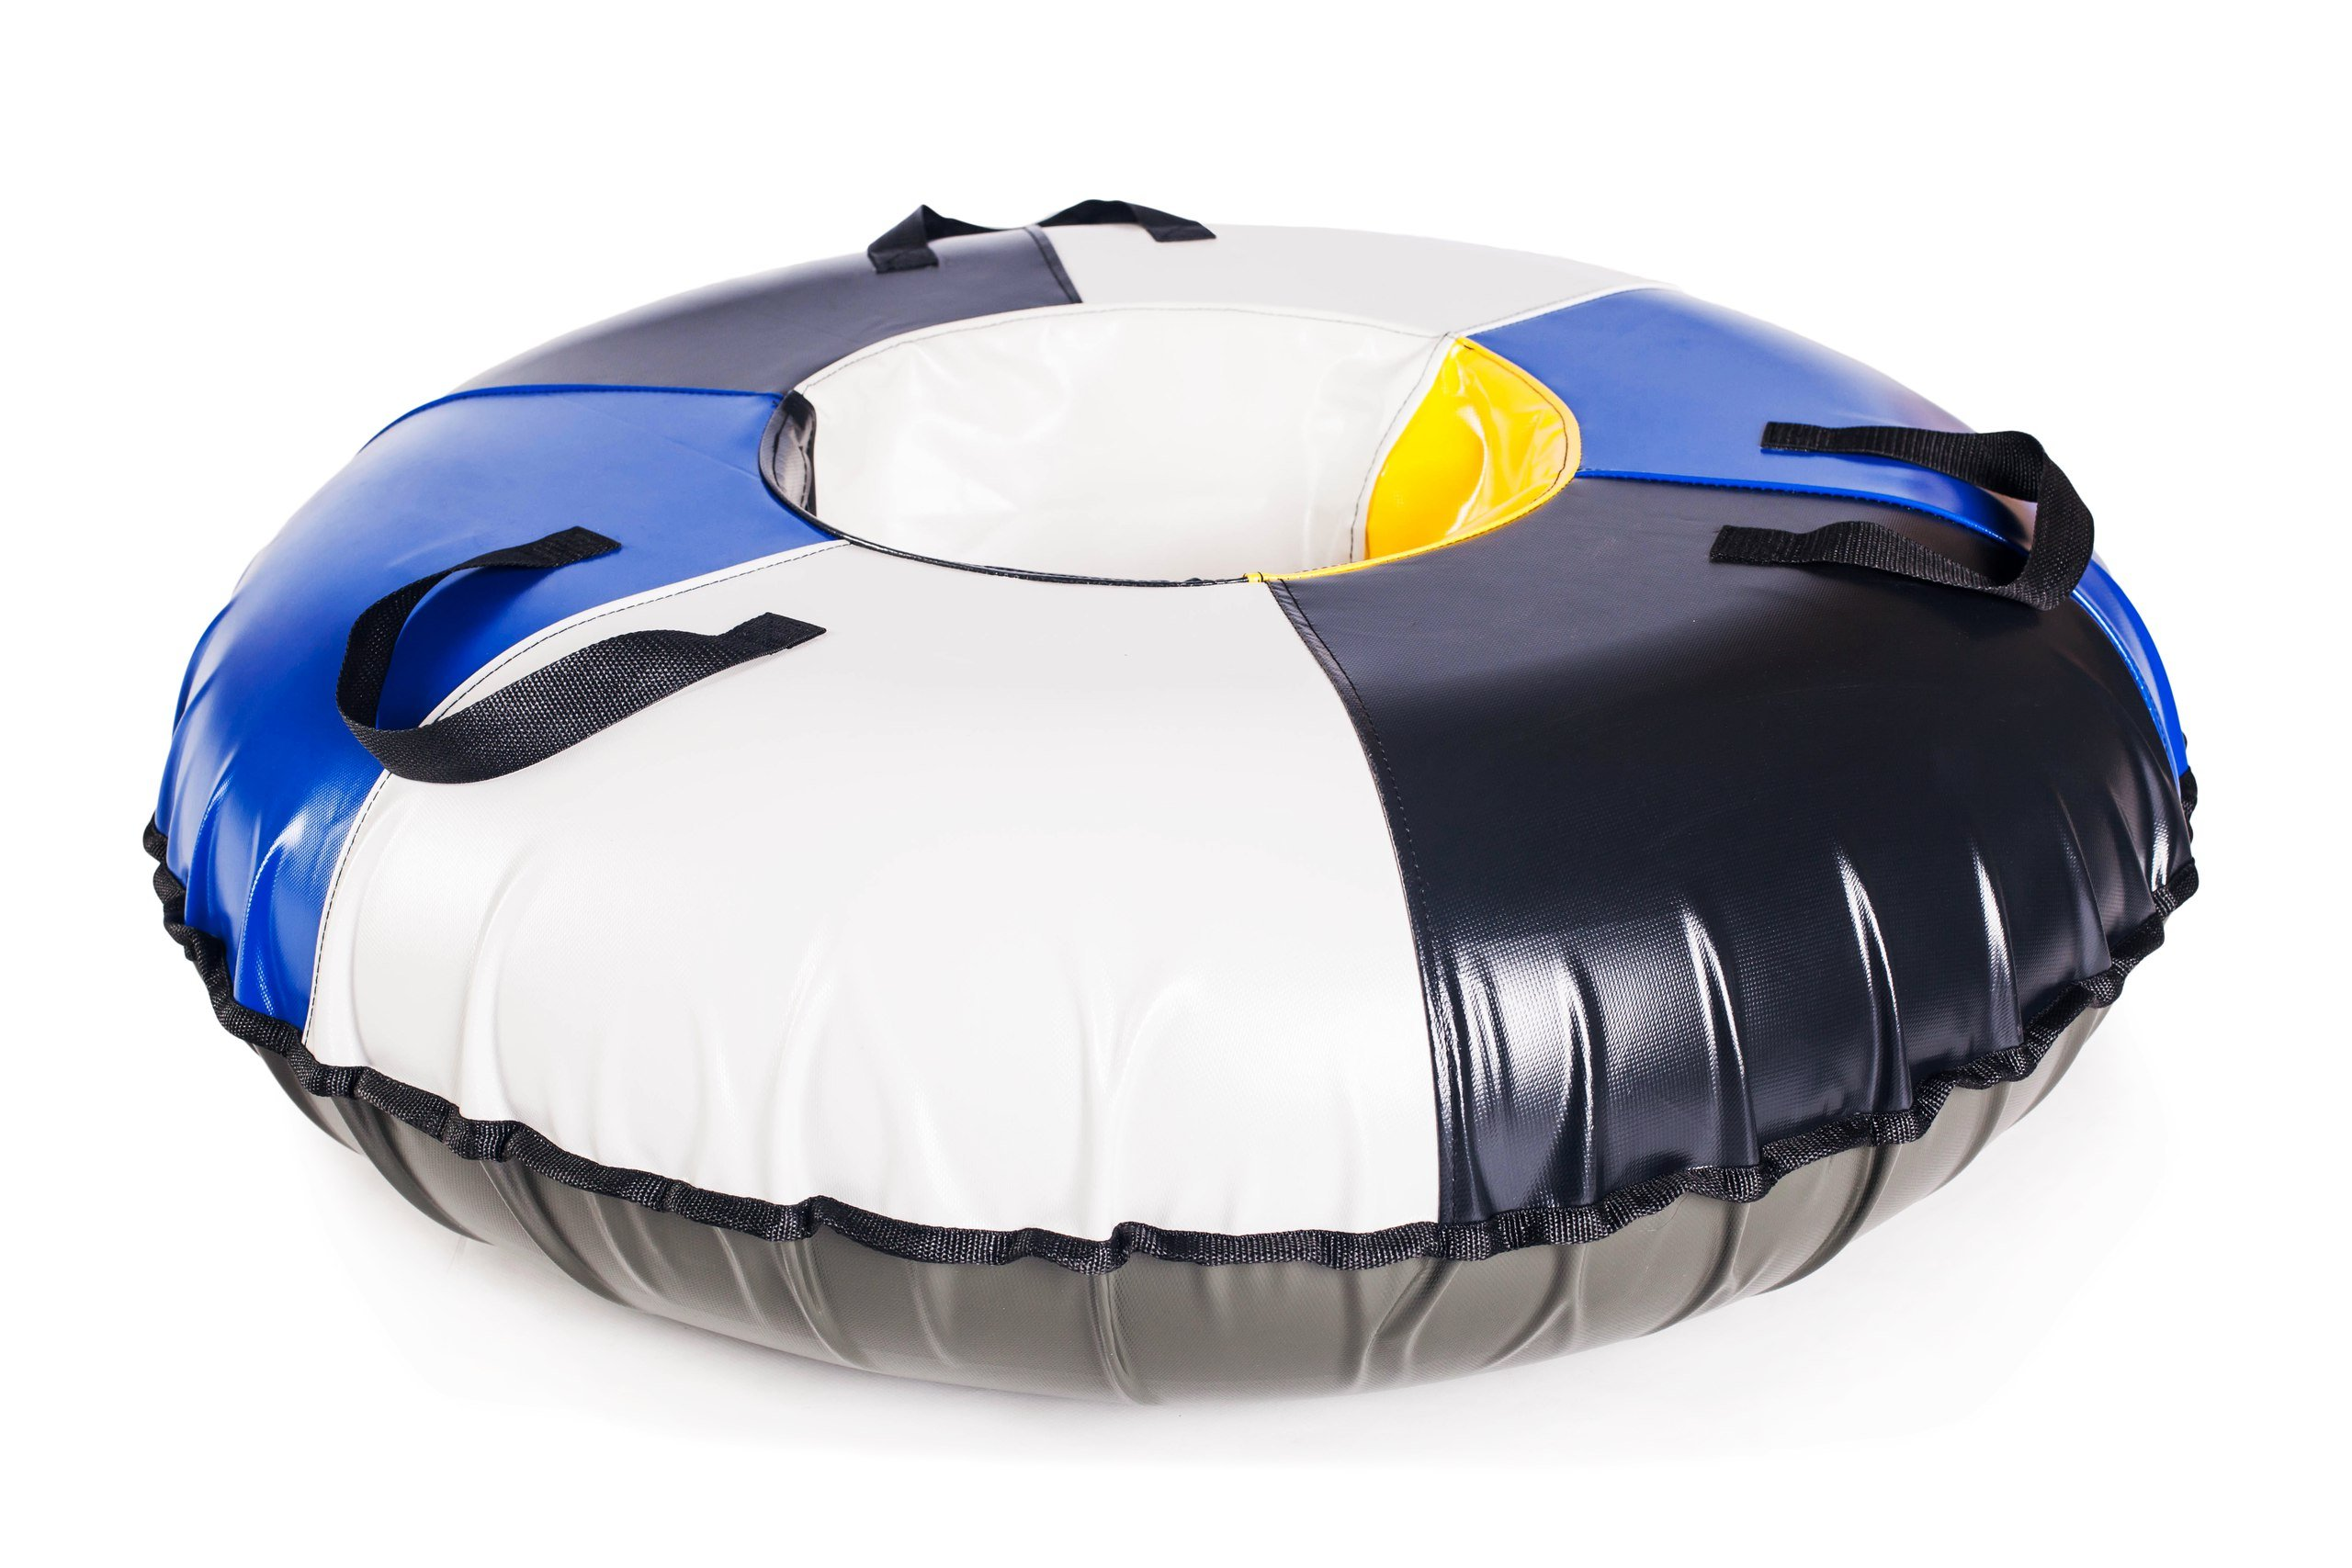 Inflatable Snow Tube №1 and №2